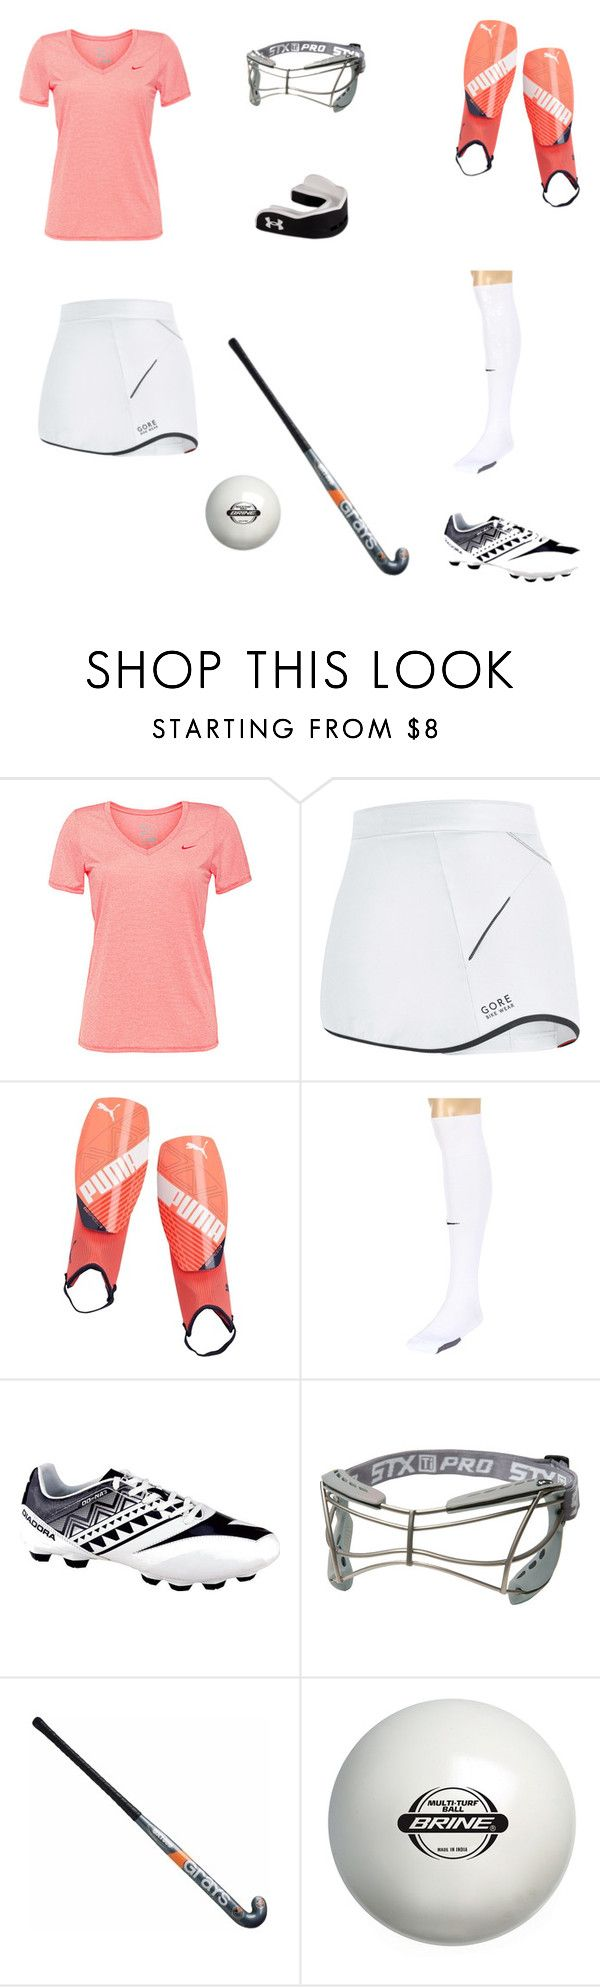 """Field hockey outfit"" by kjholmes1142 ❤ liked on Polyvore featuring NIKE, Gore Bike Wear, Puma, Diadora, women's clothing, women, female, woman, misses and juniors"